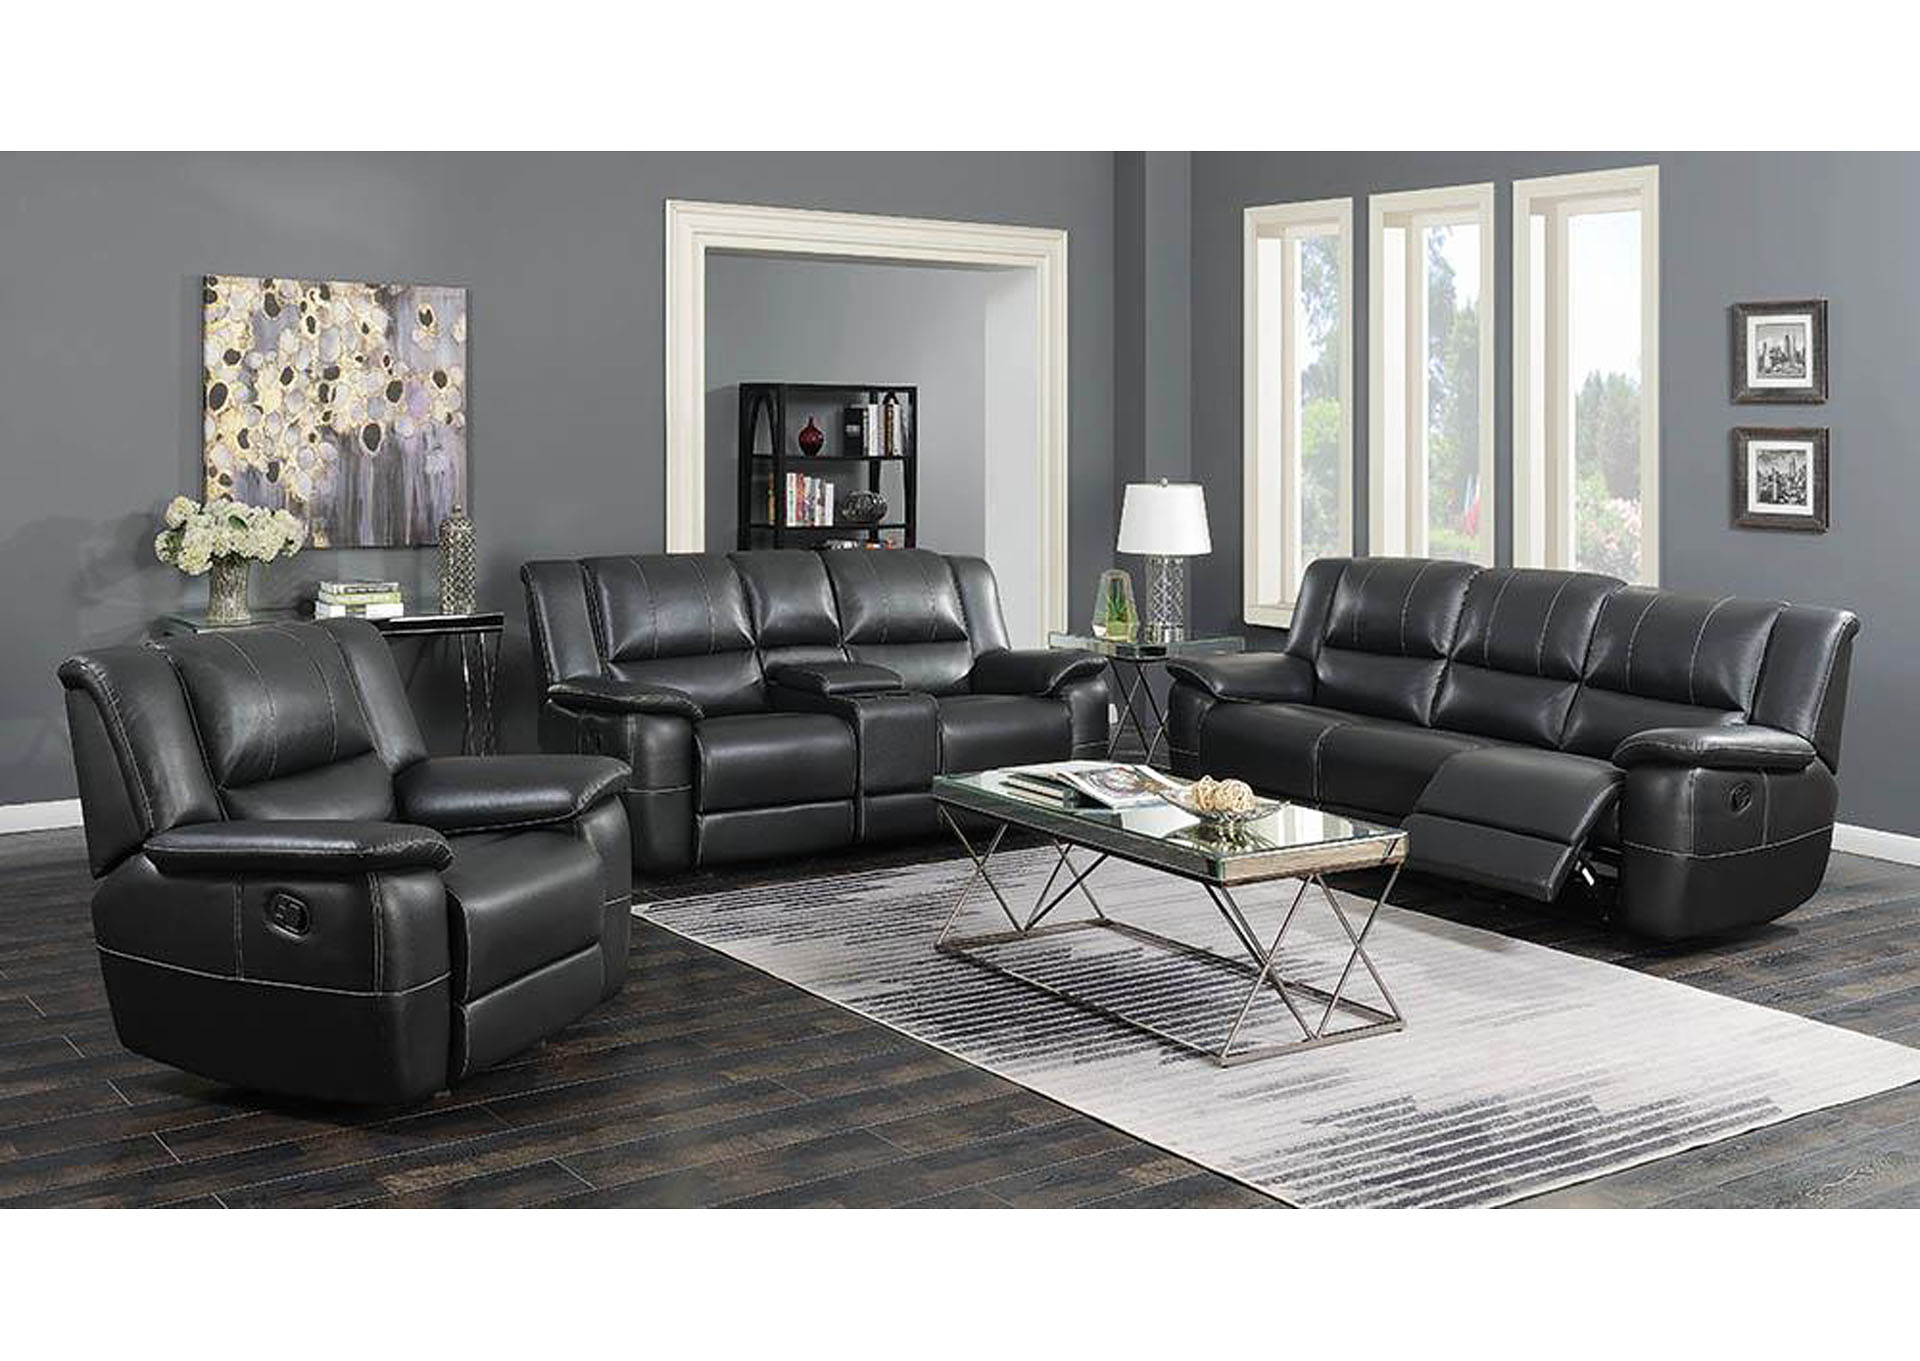 Lee Black Reclining Sofa,Coaster Furniture